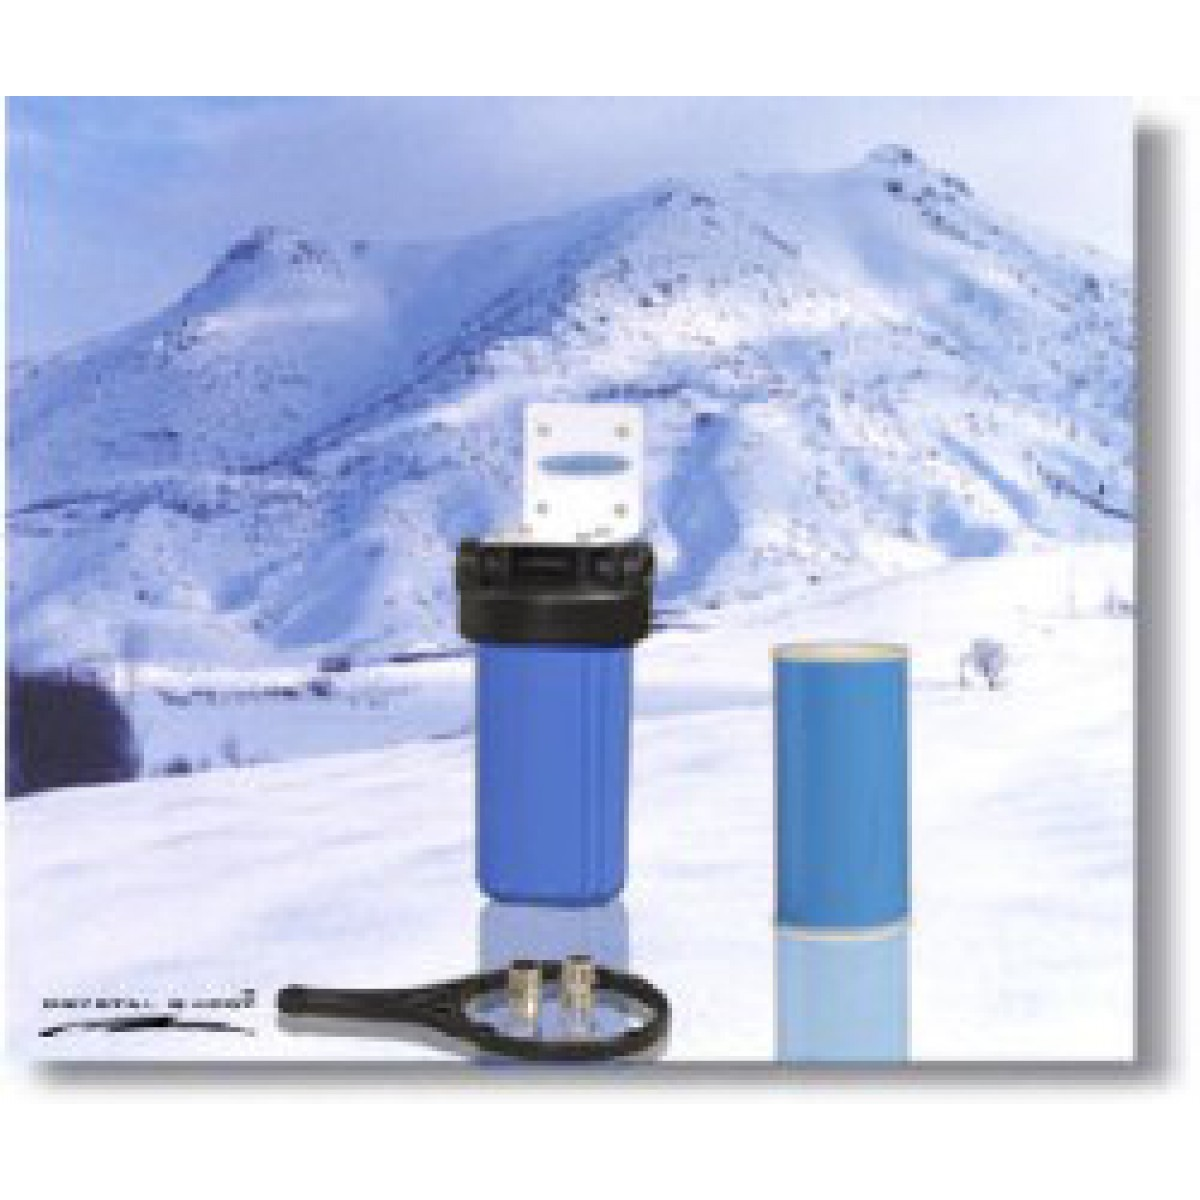 3abdc0317cc Crystal Quest Whole House Single 10 in x 5.0 in Water Filter System